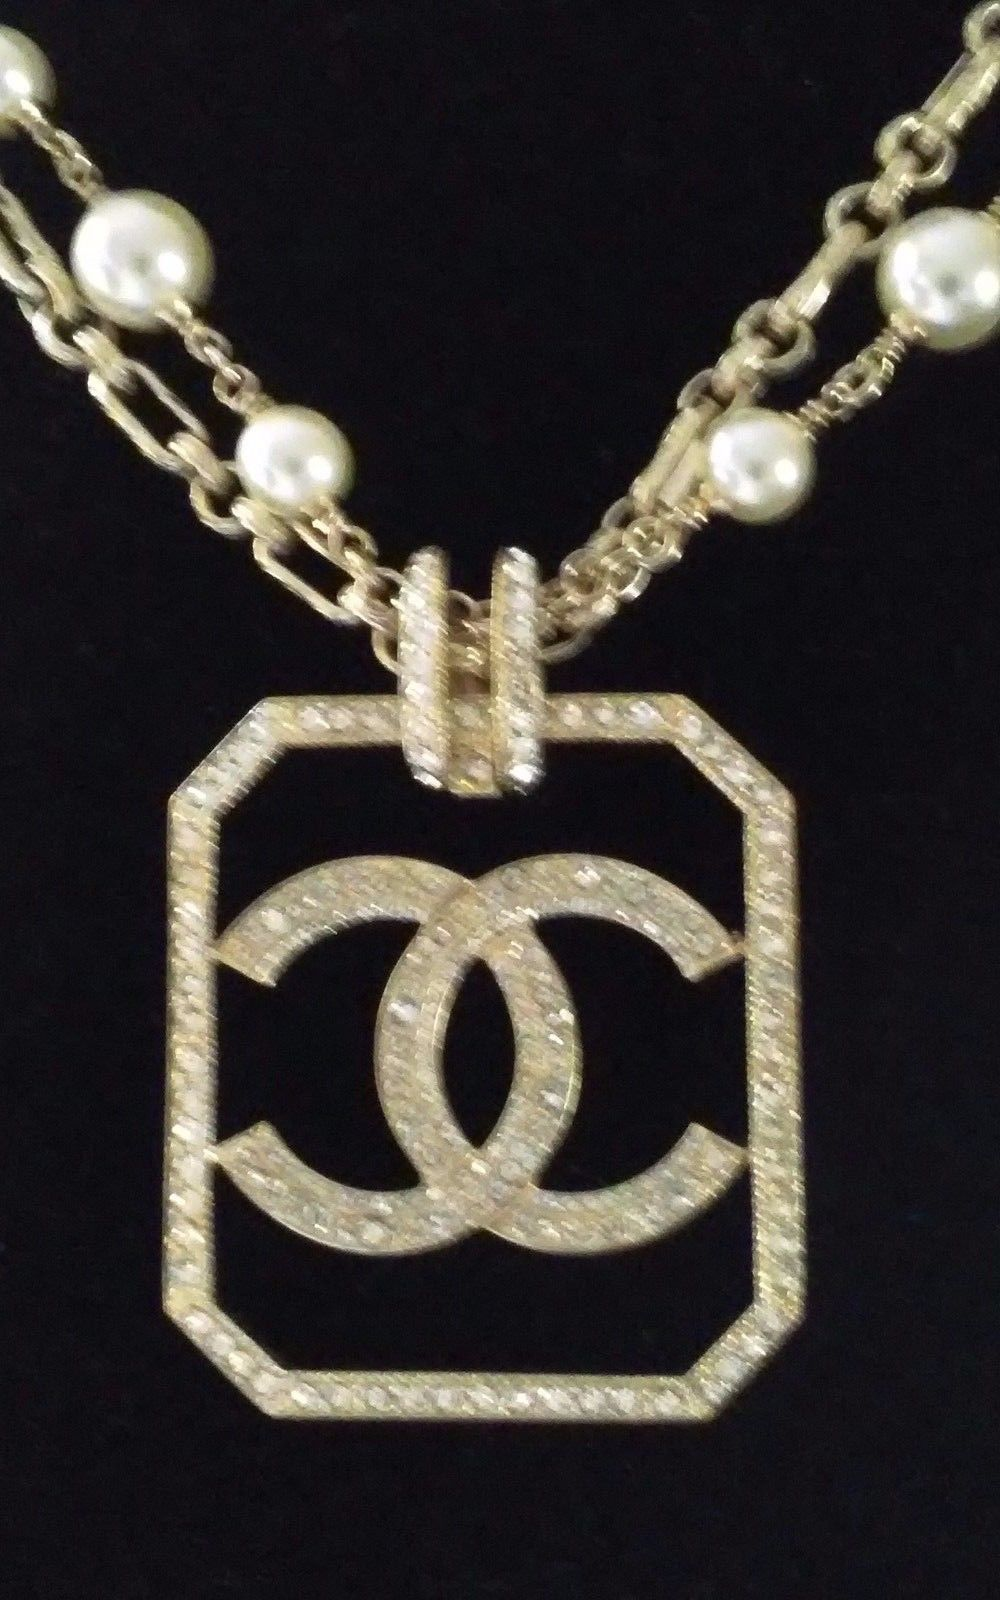 Authentic Chanel Pearl Necklace With Cc Ville Du Muy